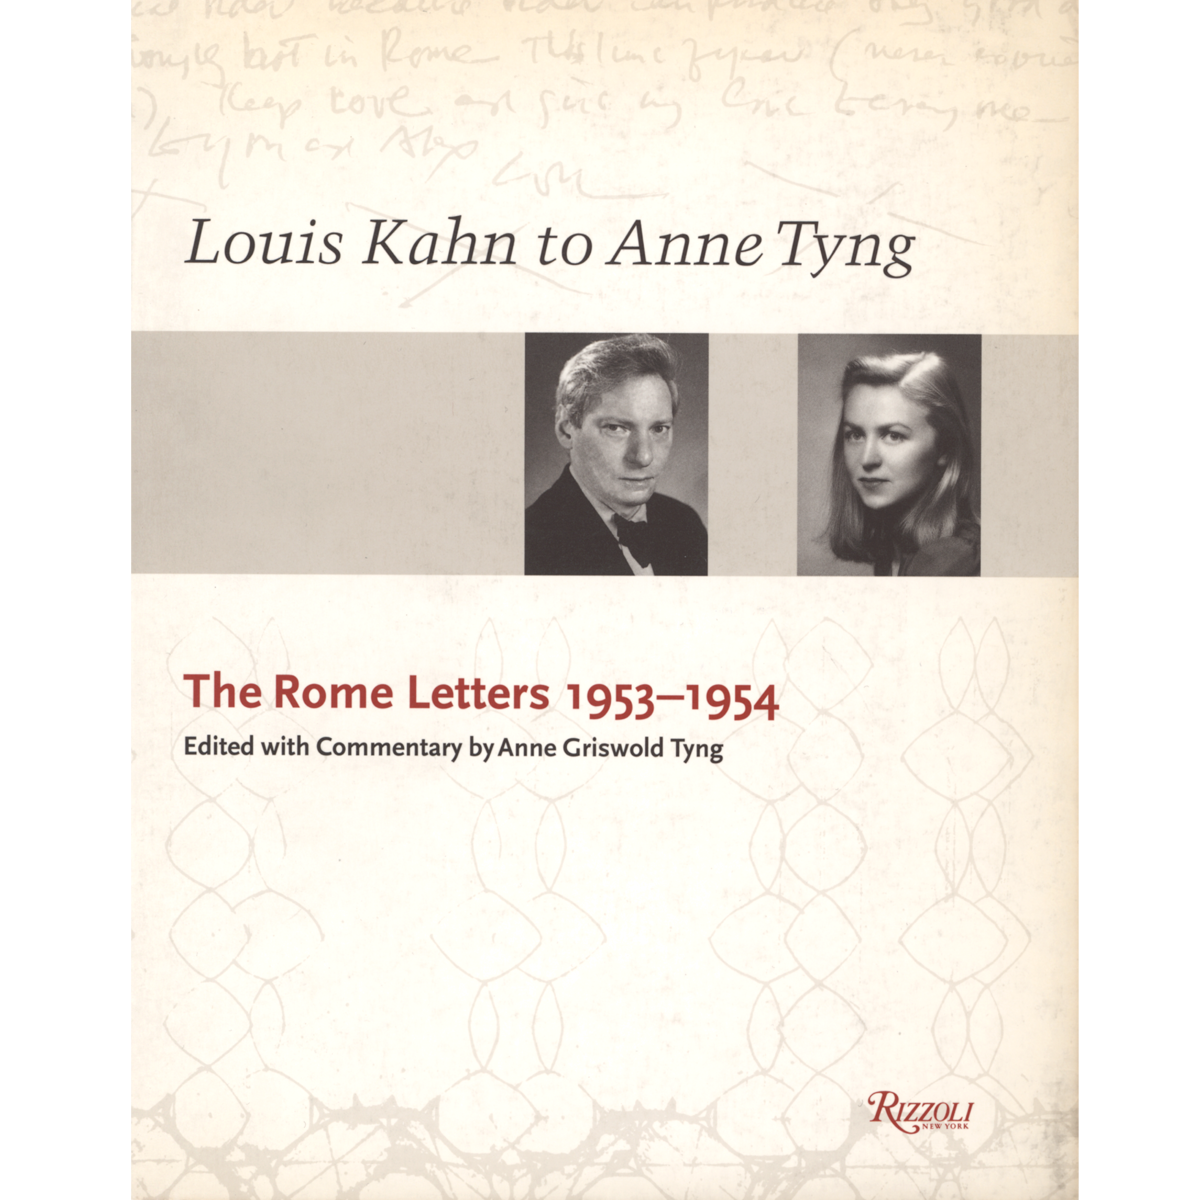 Louis Kahn to Anne Tyng: The Rome Letters 1953-1954